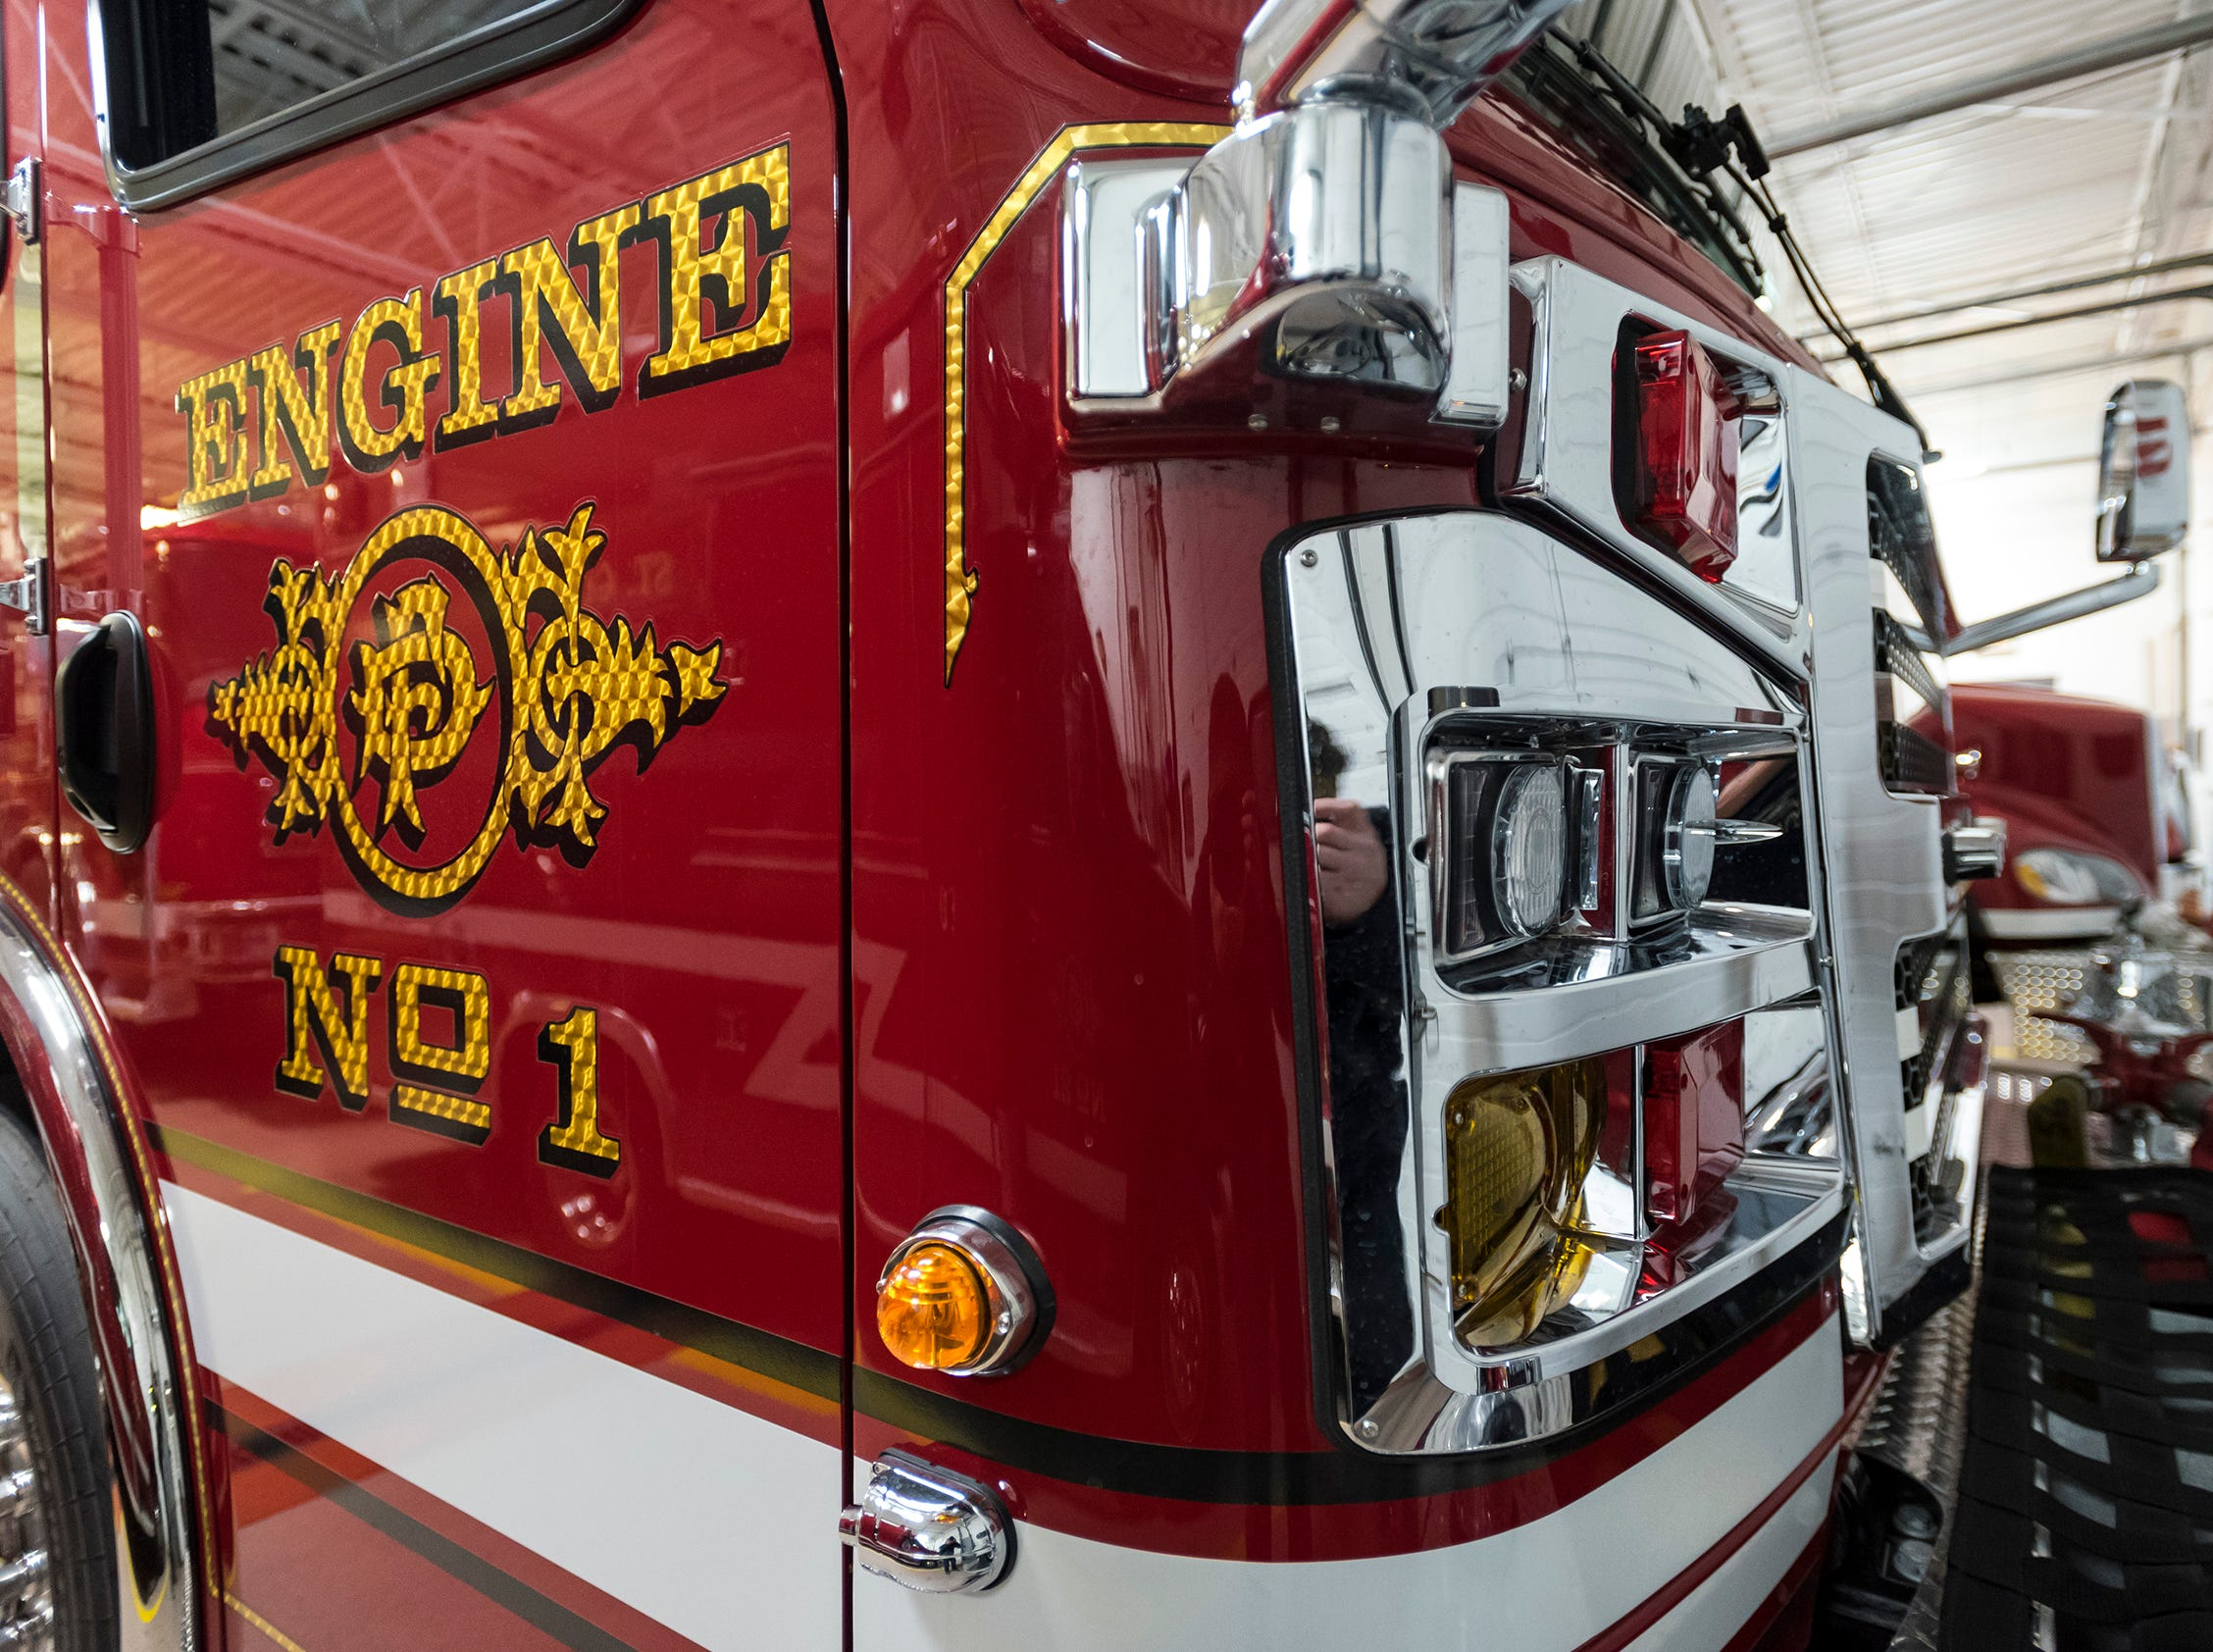 Signage and modern headlights on the front of St. Clair Fire Department's new truck. The St. Clair Fire Authority began the design process for the truck about two years ago, and took possession of it in September.